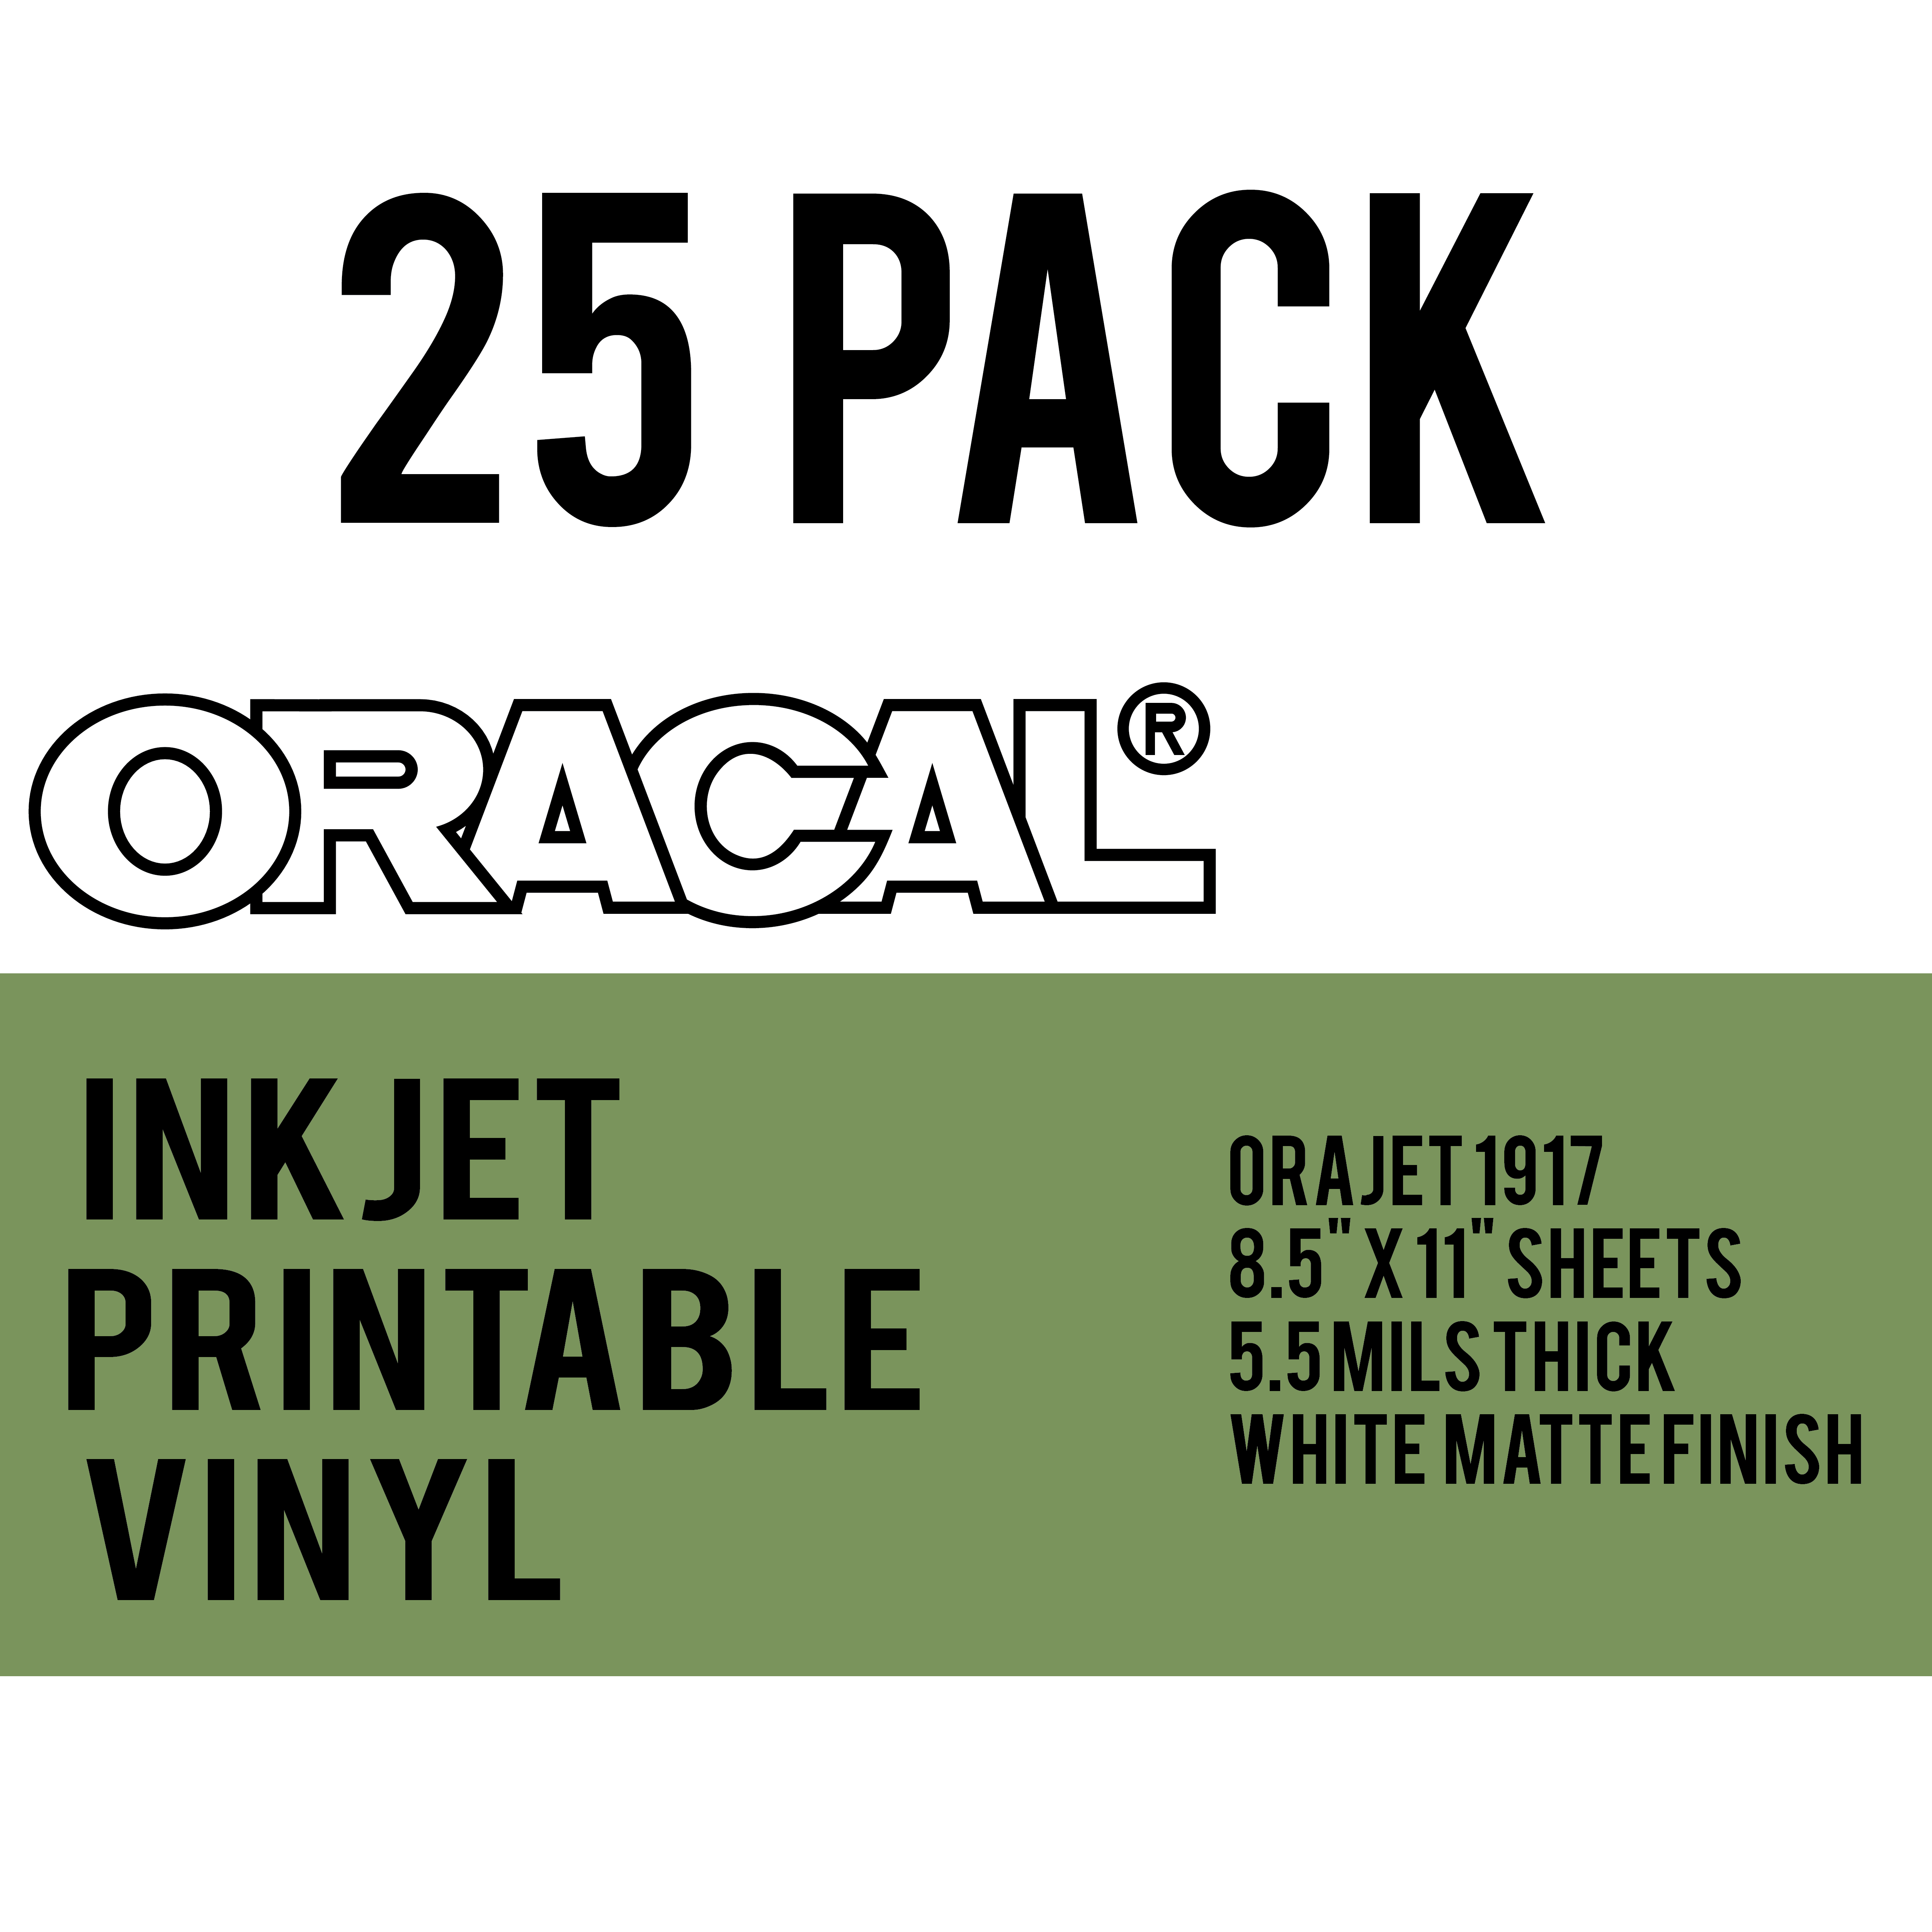 photo about Printable Adhesive Vinyl identified as Oracal Inkjet Printable Lasting adhesive Vinyl Through The 8.5 x 11 inch - 25 sheet pack